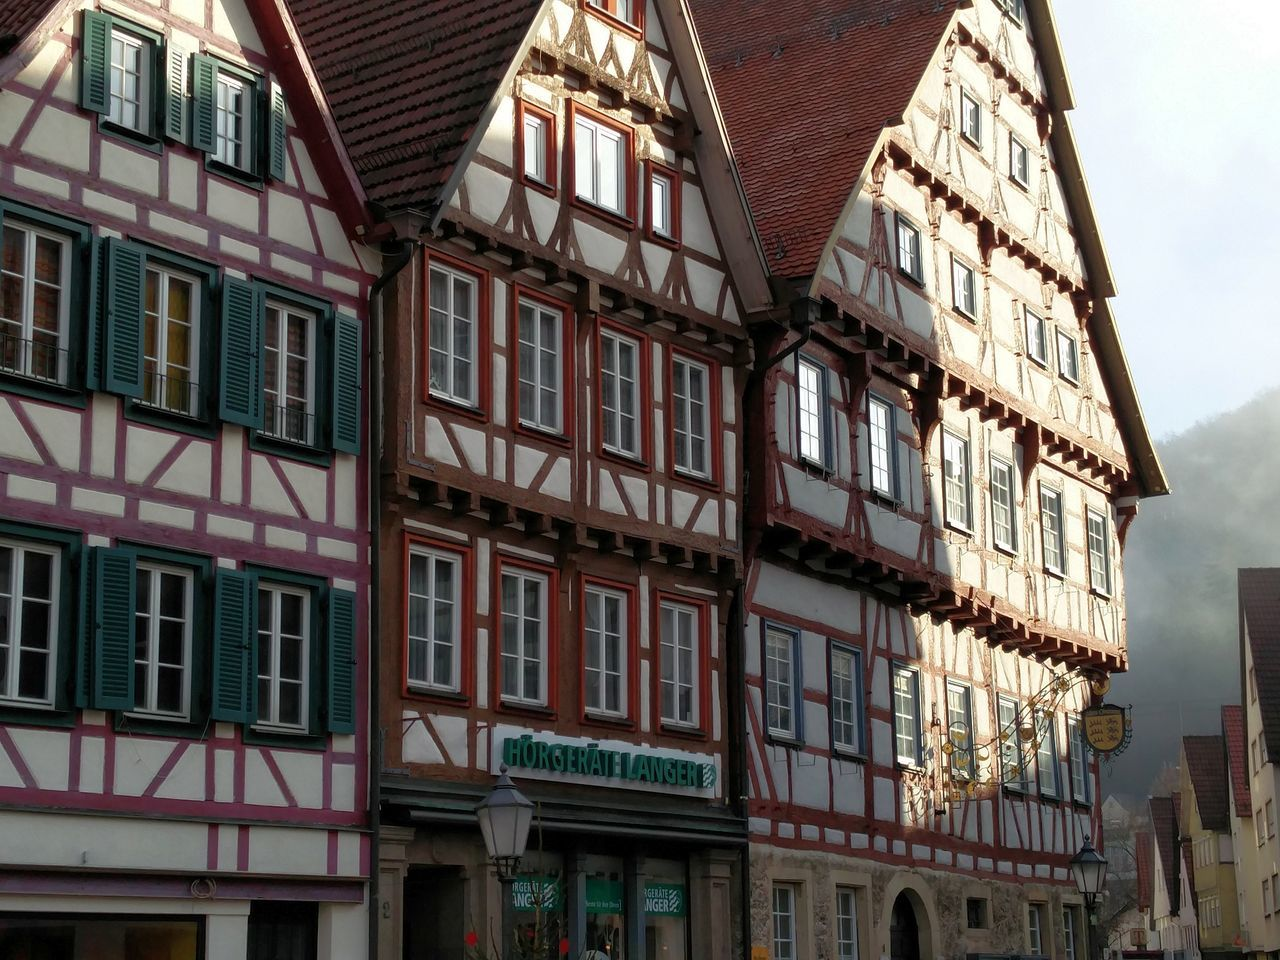 idyllic provincial town Architecture Building Exterior Built Structure City Façade Fachwerk Perspective Residential Structure Timber Frame Oneplus2